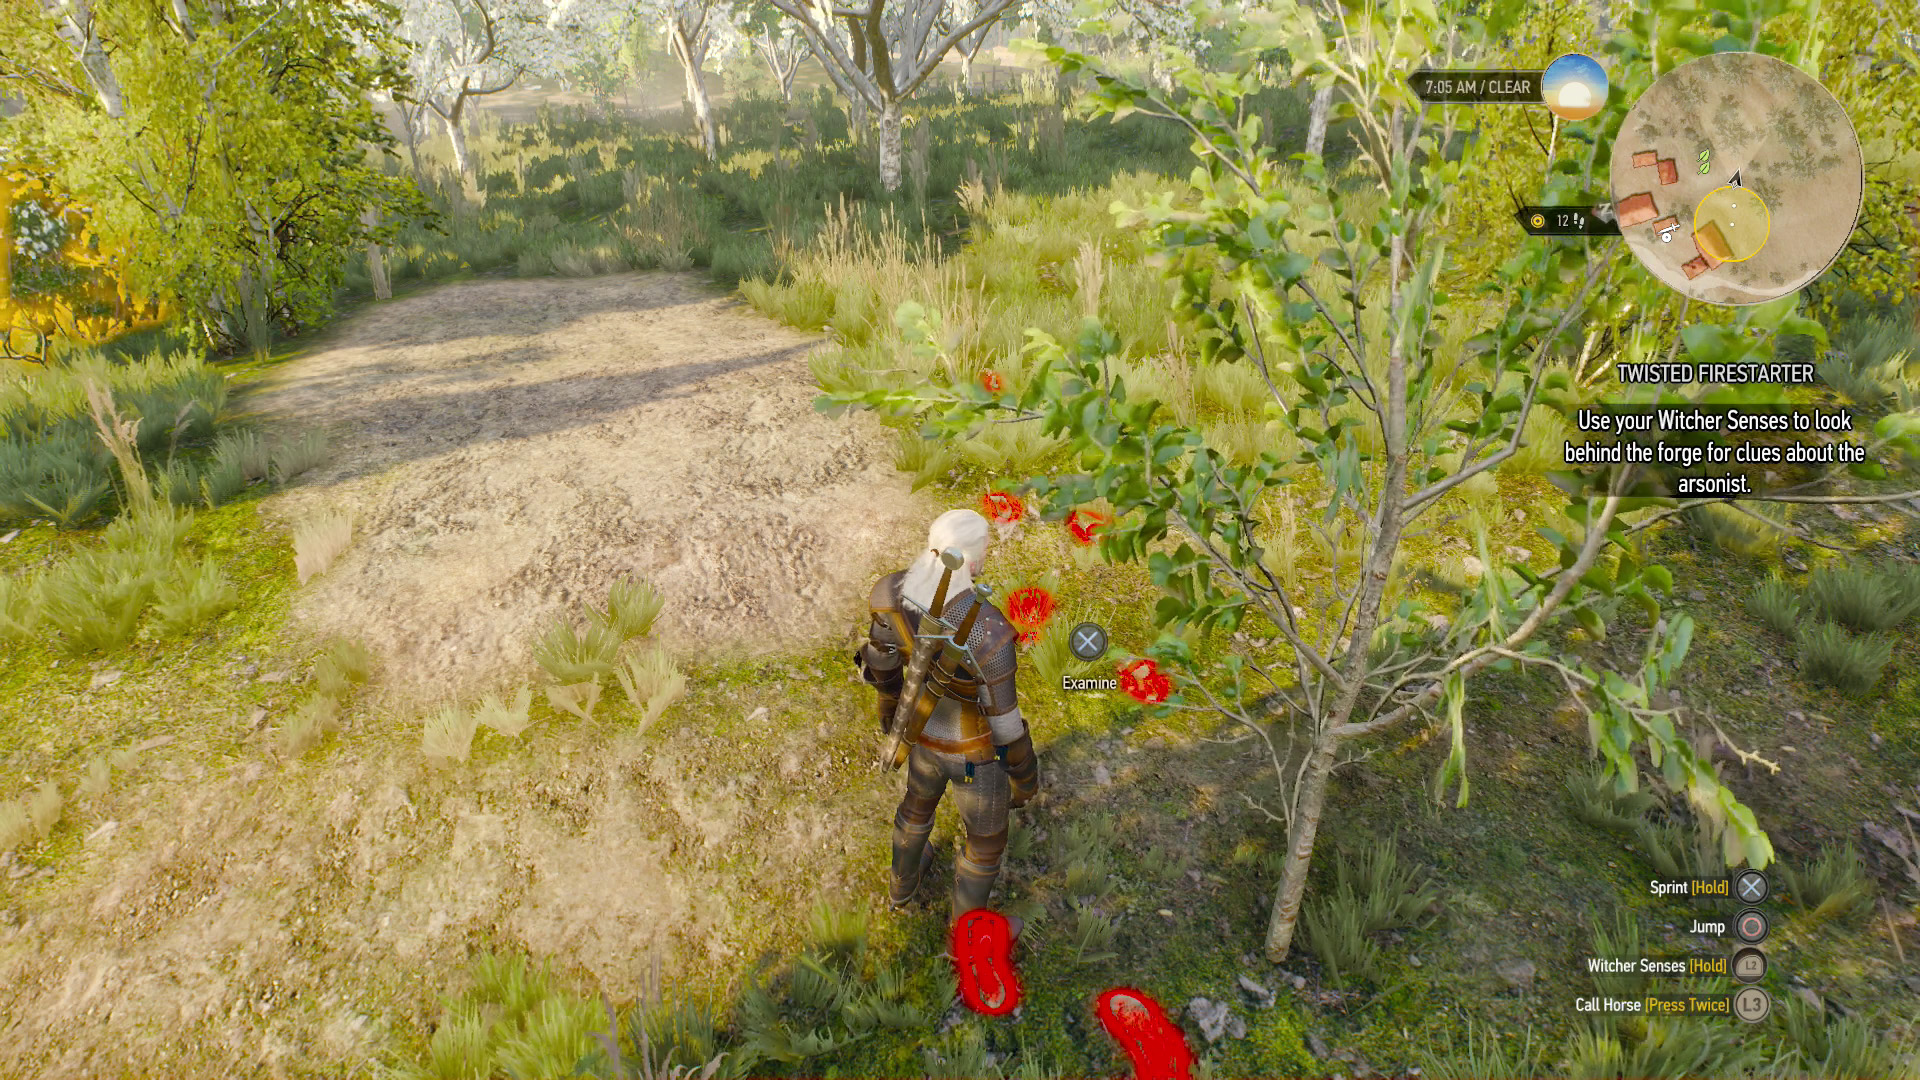 The Witcher 3: All White Orchard Side Quests Guide - Missing